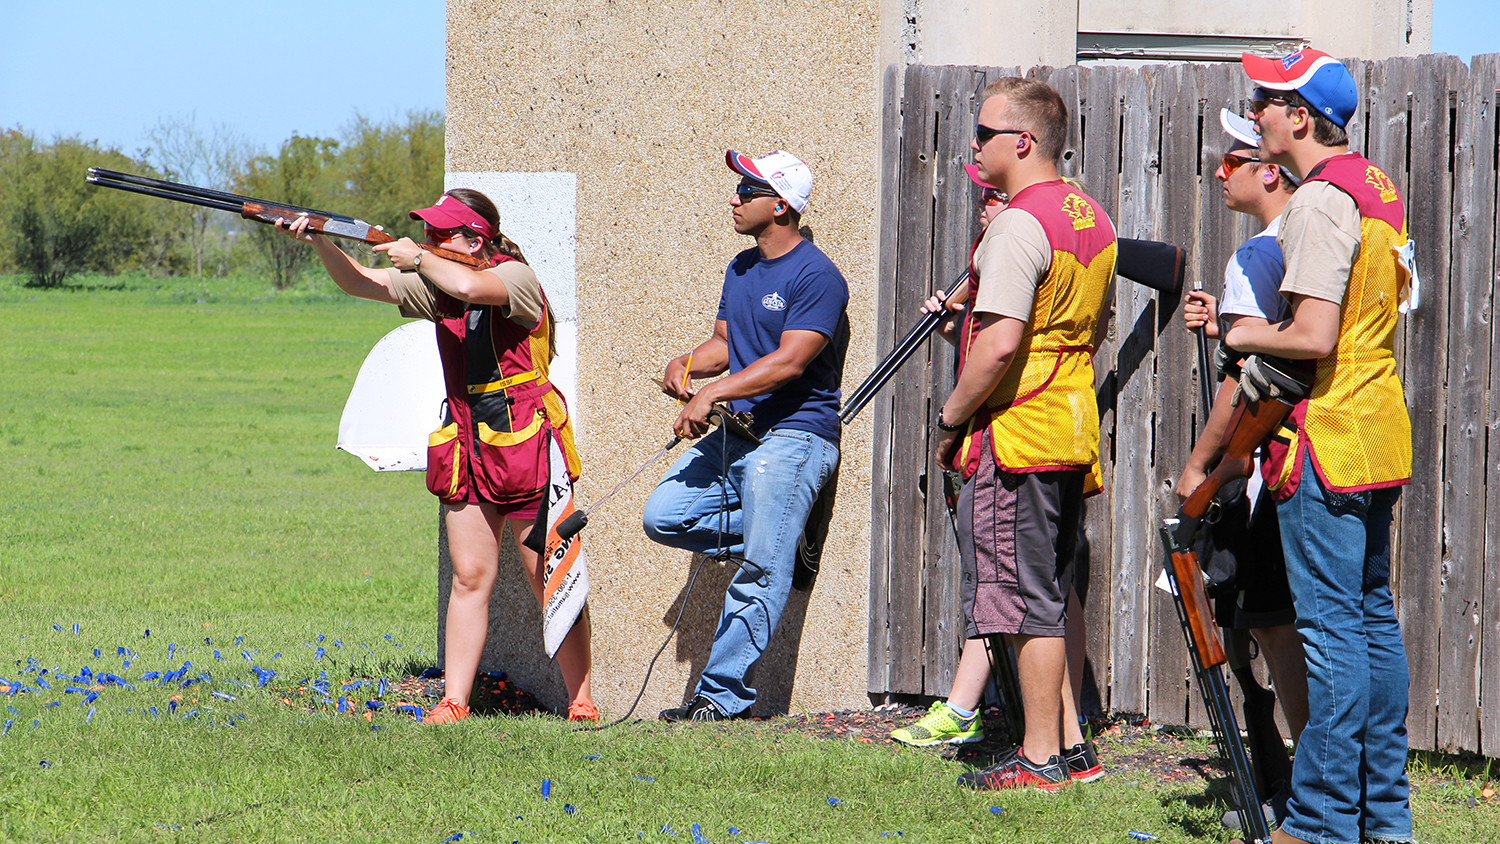 Shooting Sports Continues To Draw Young Talent